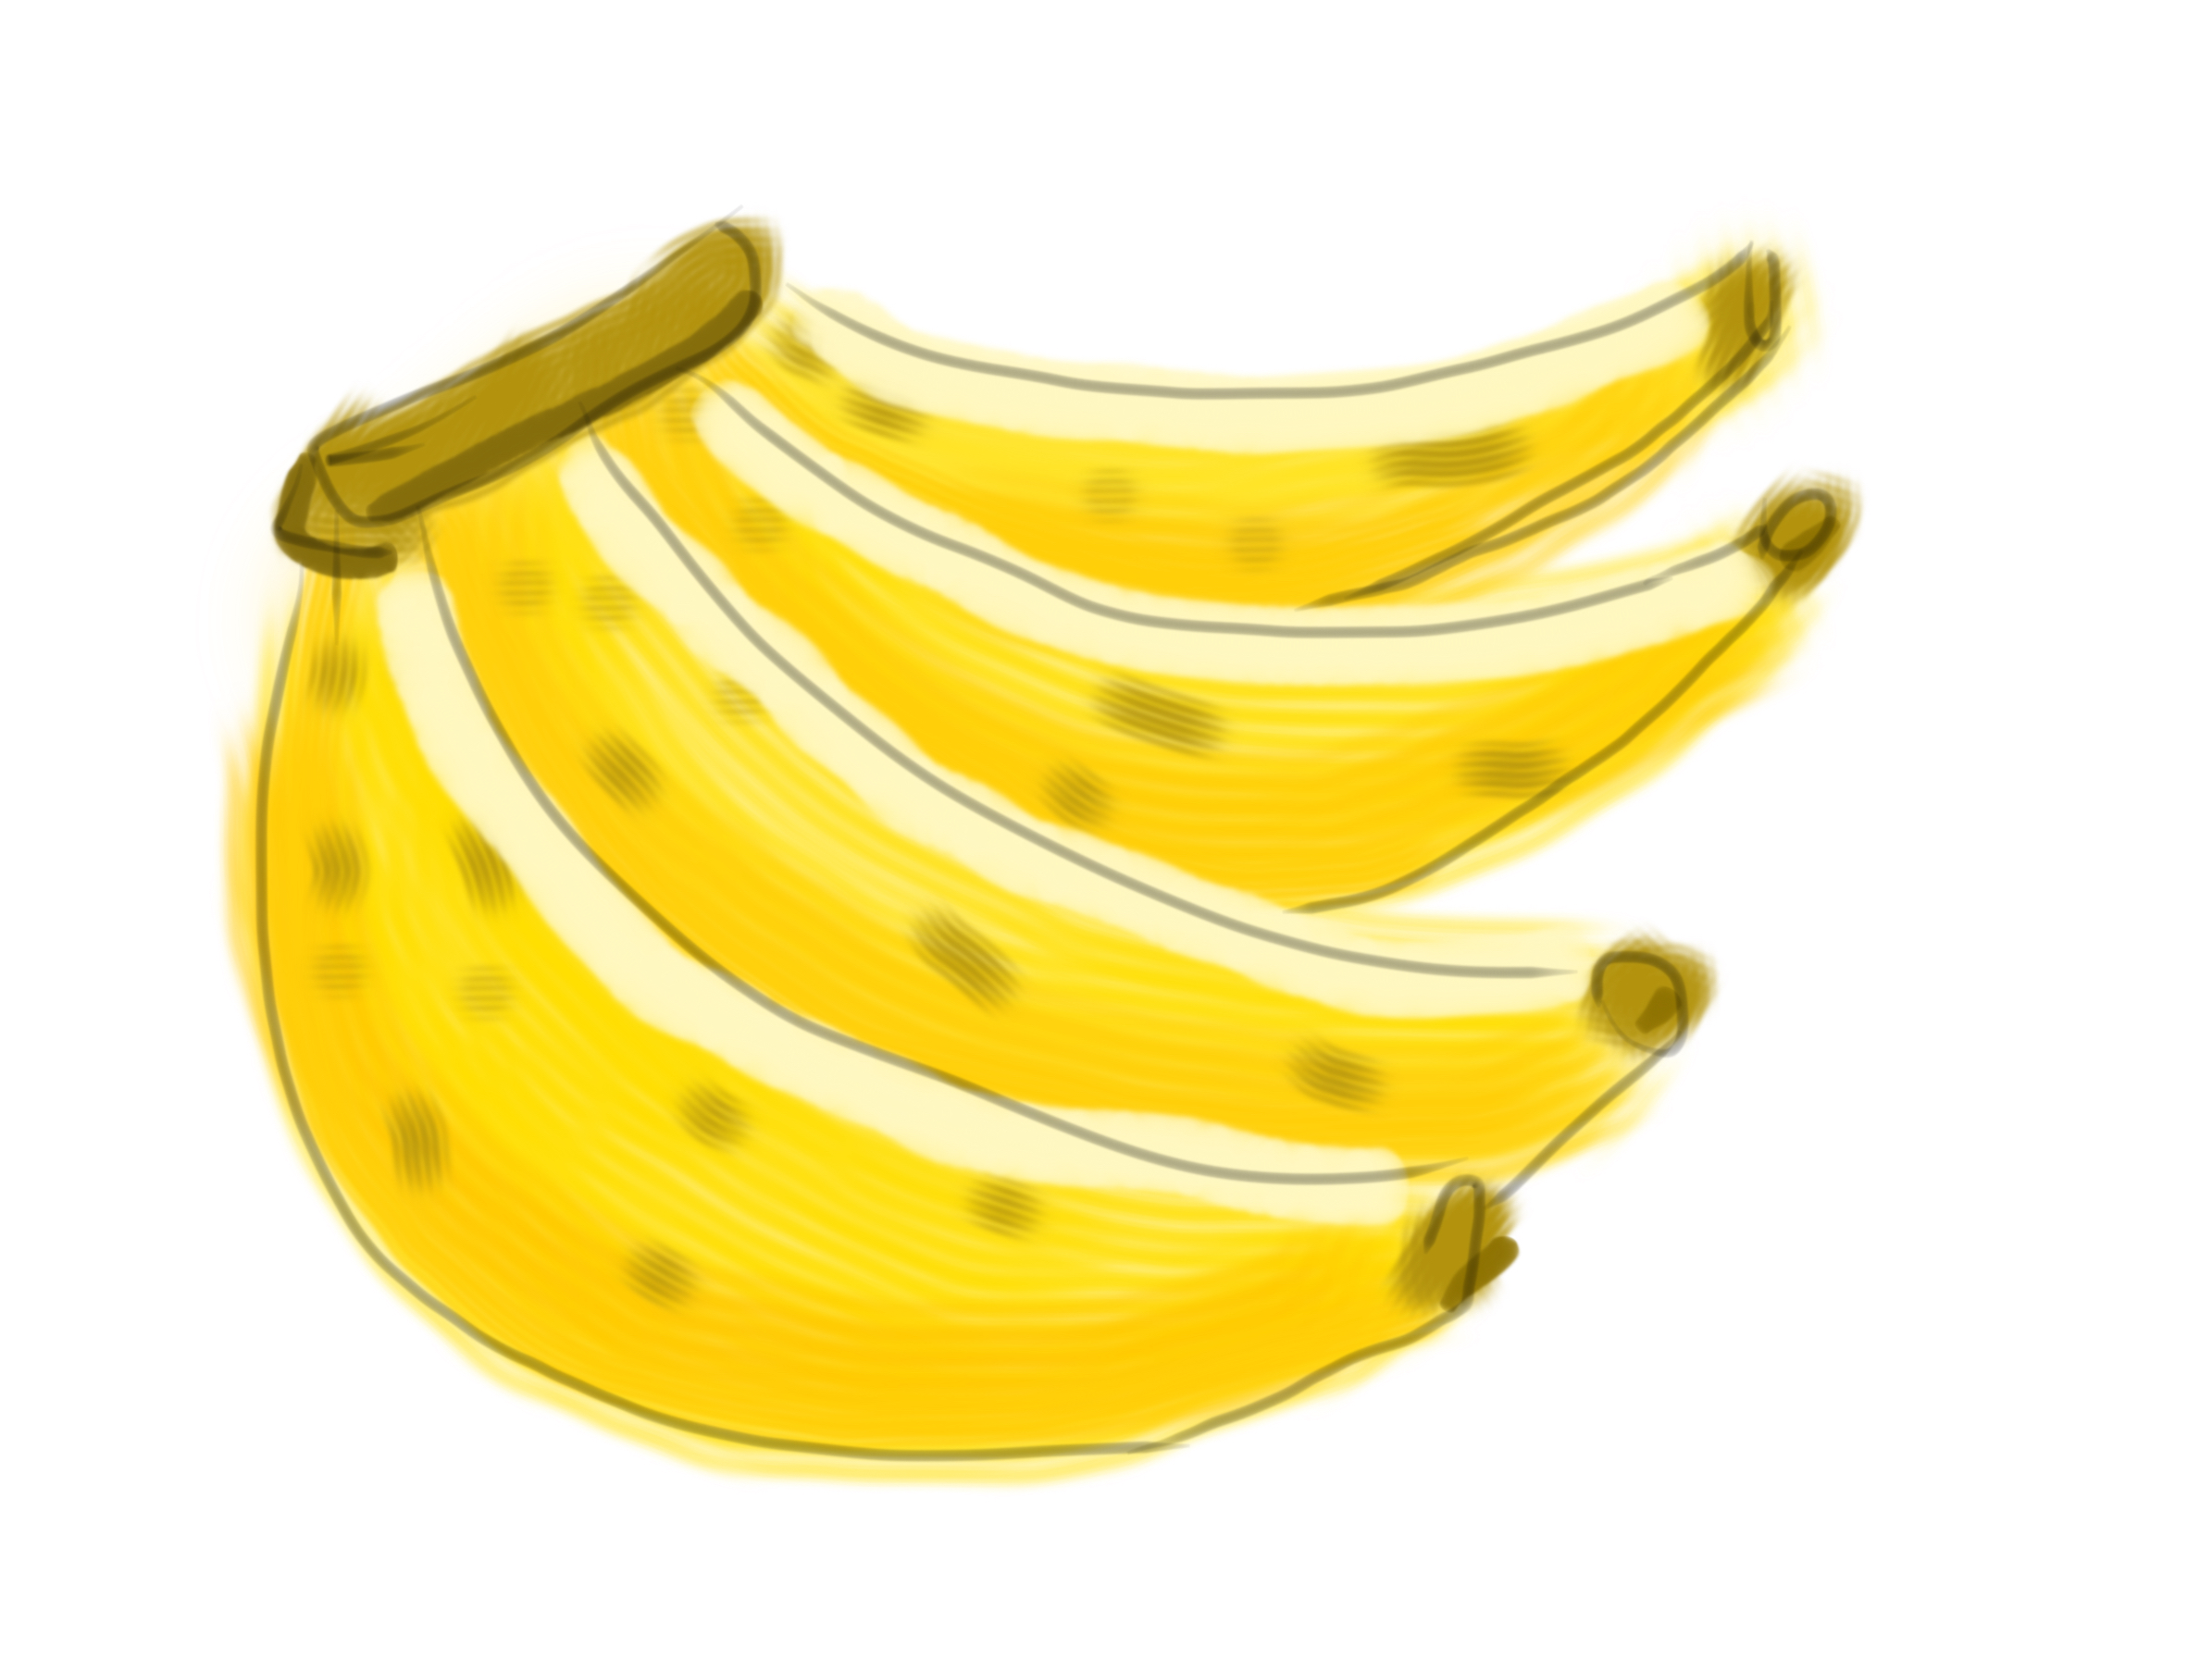 Bananas by psychoduck